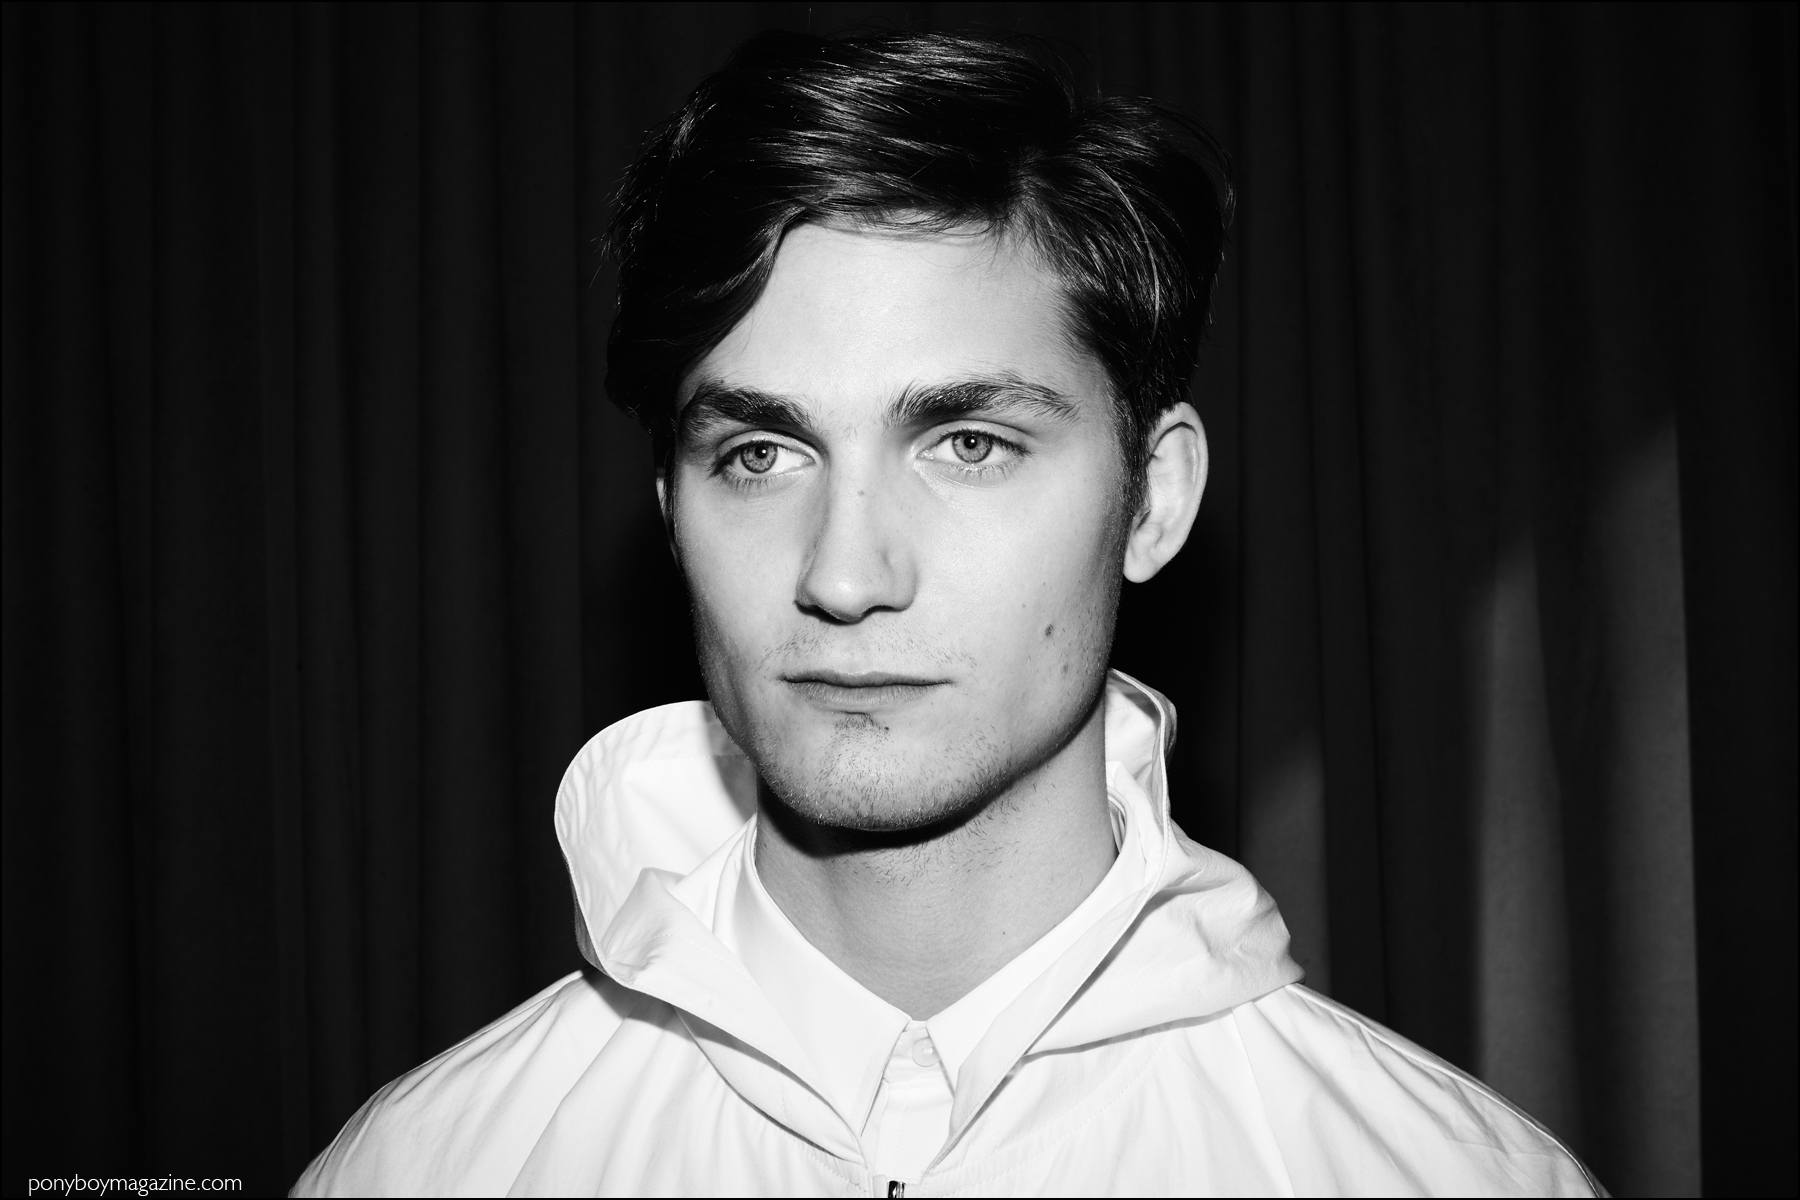 Black and white portrait of male model Paul-Alexandre Haubtmann photographed backstage in Duckie Brown F/W16 menswear. Photography by Alexander Thompson for Ponyboy magazine NY.